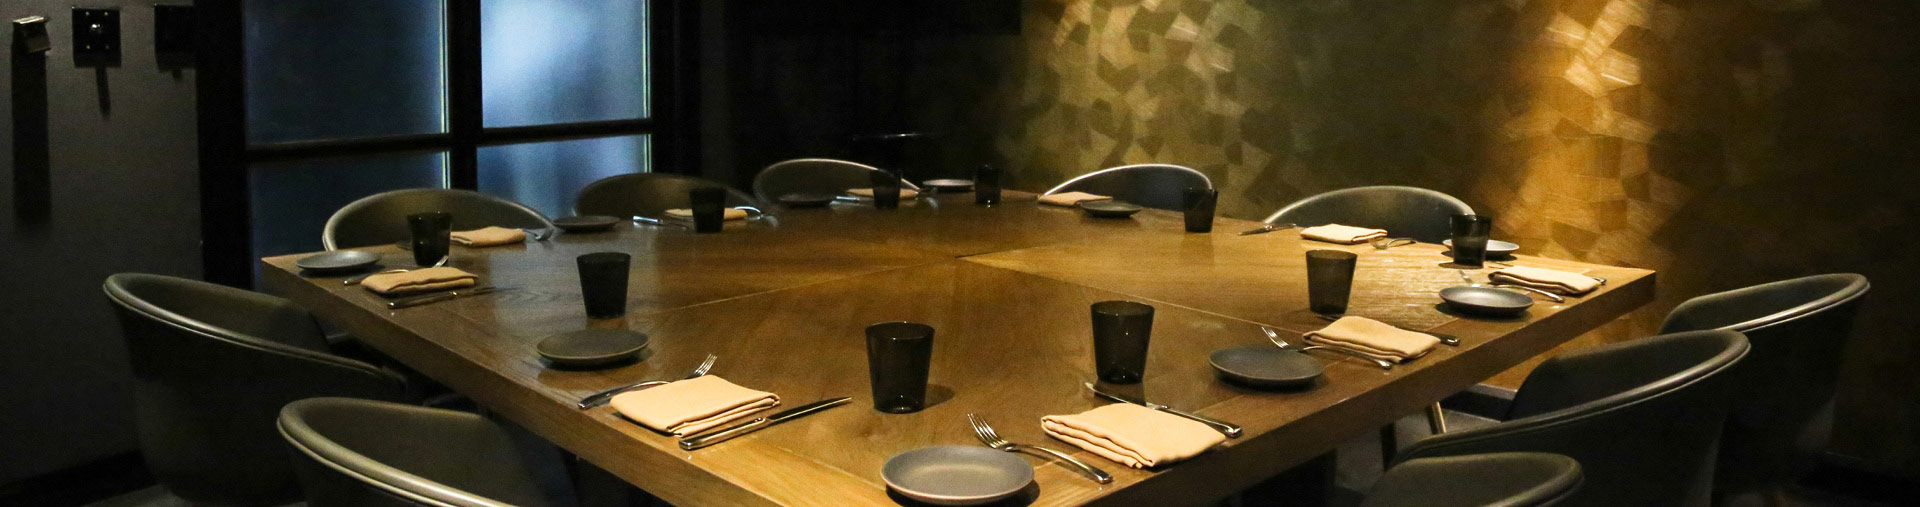 Private dining space set up at Nick + Stef's Steakhouse in Los Angeles